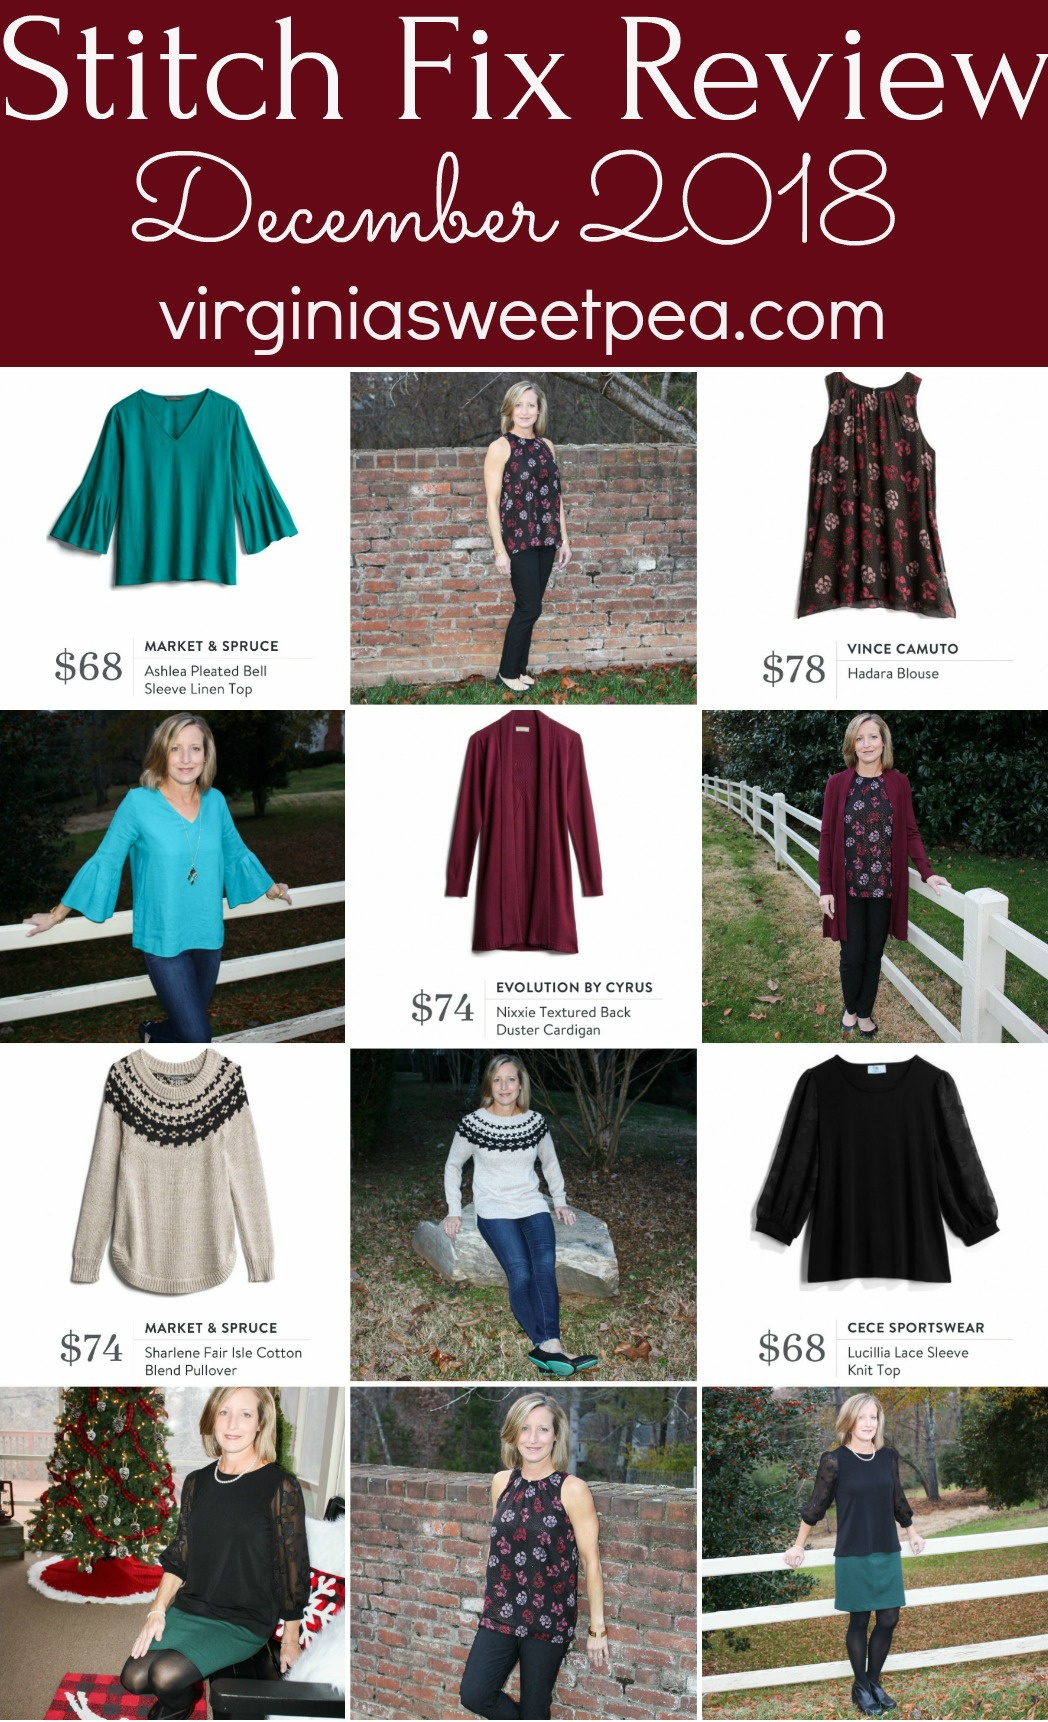 Stitch Fix Review for December 2018 - Fix #64 - See styles for winter and also for holiday wear. #stitchfix #stitchfixreview #decemberstitchfix